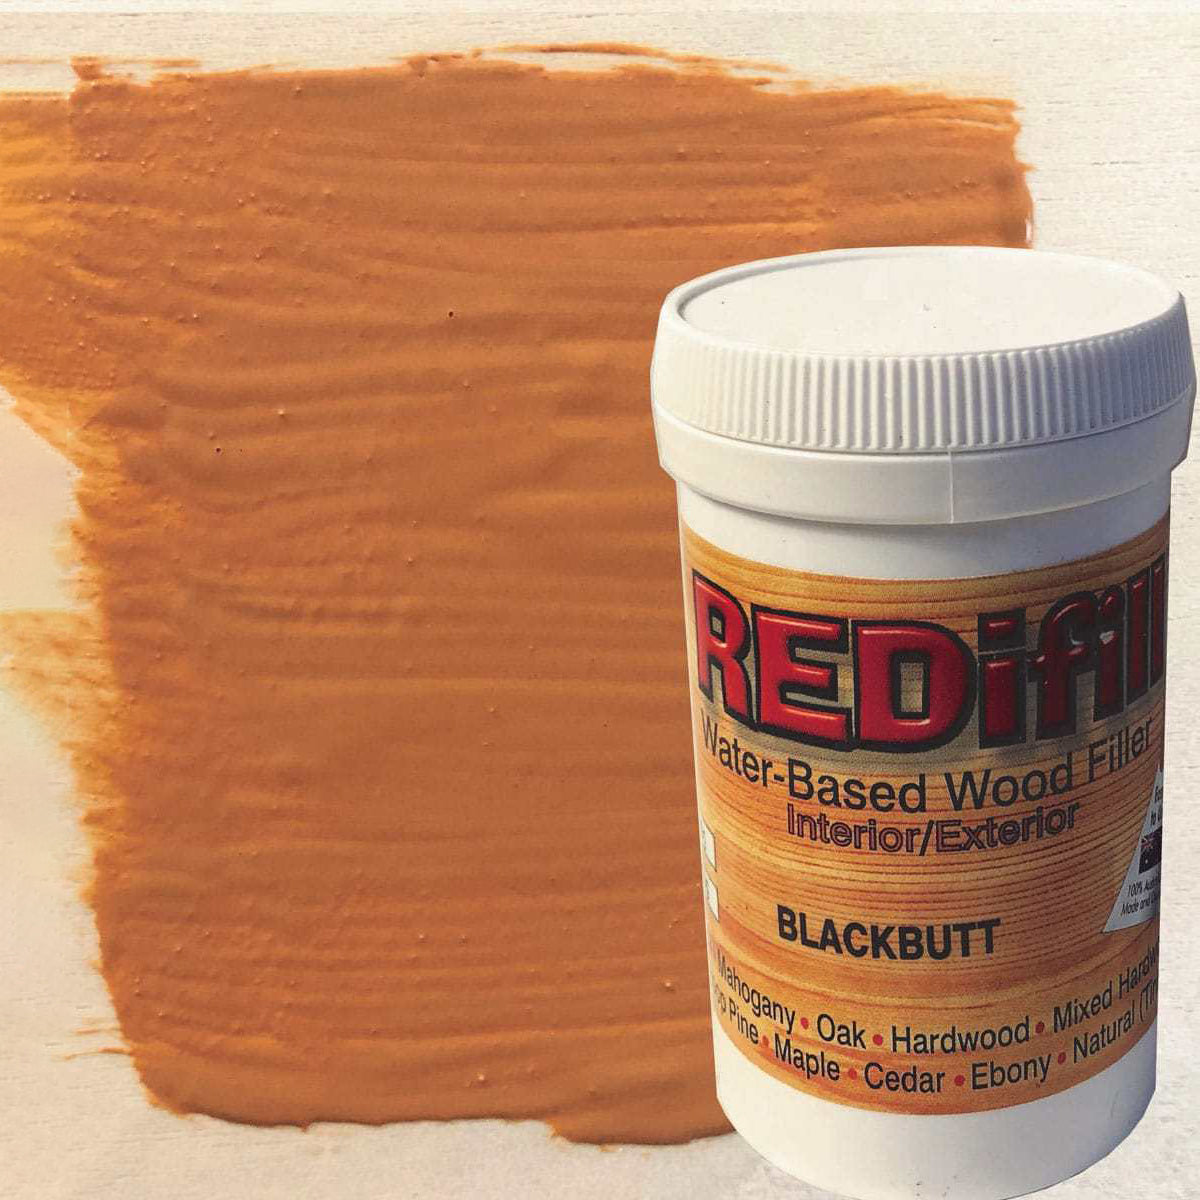 REDifill wood filler (Blackbutt)